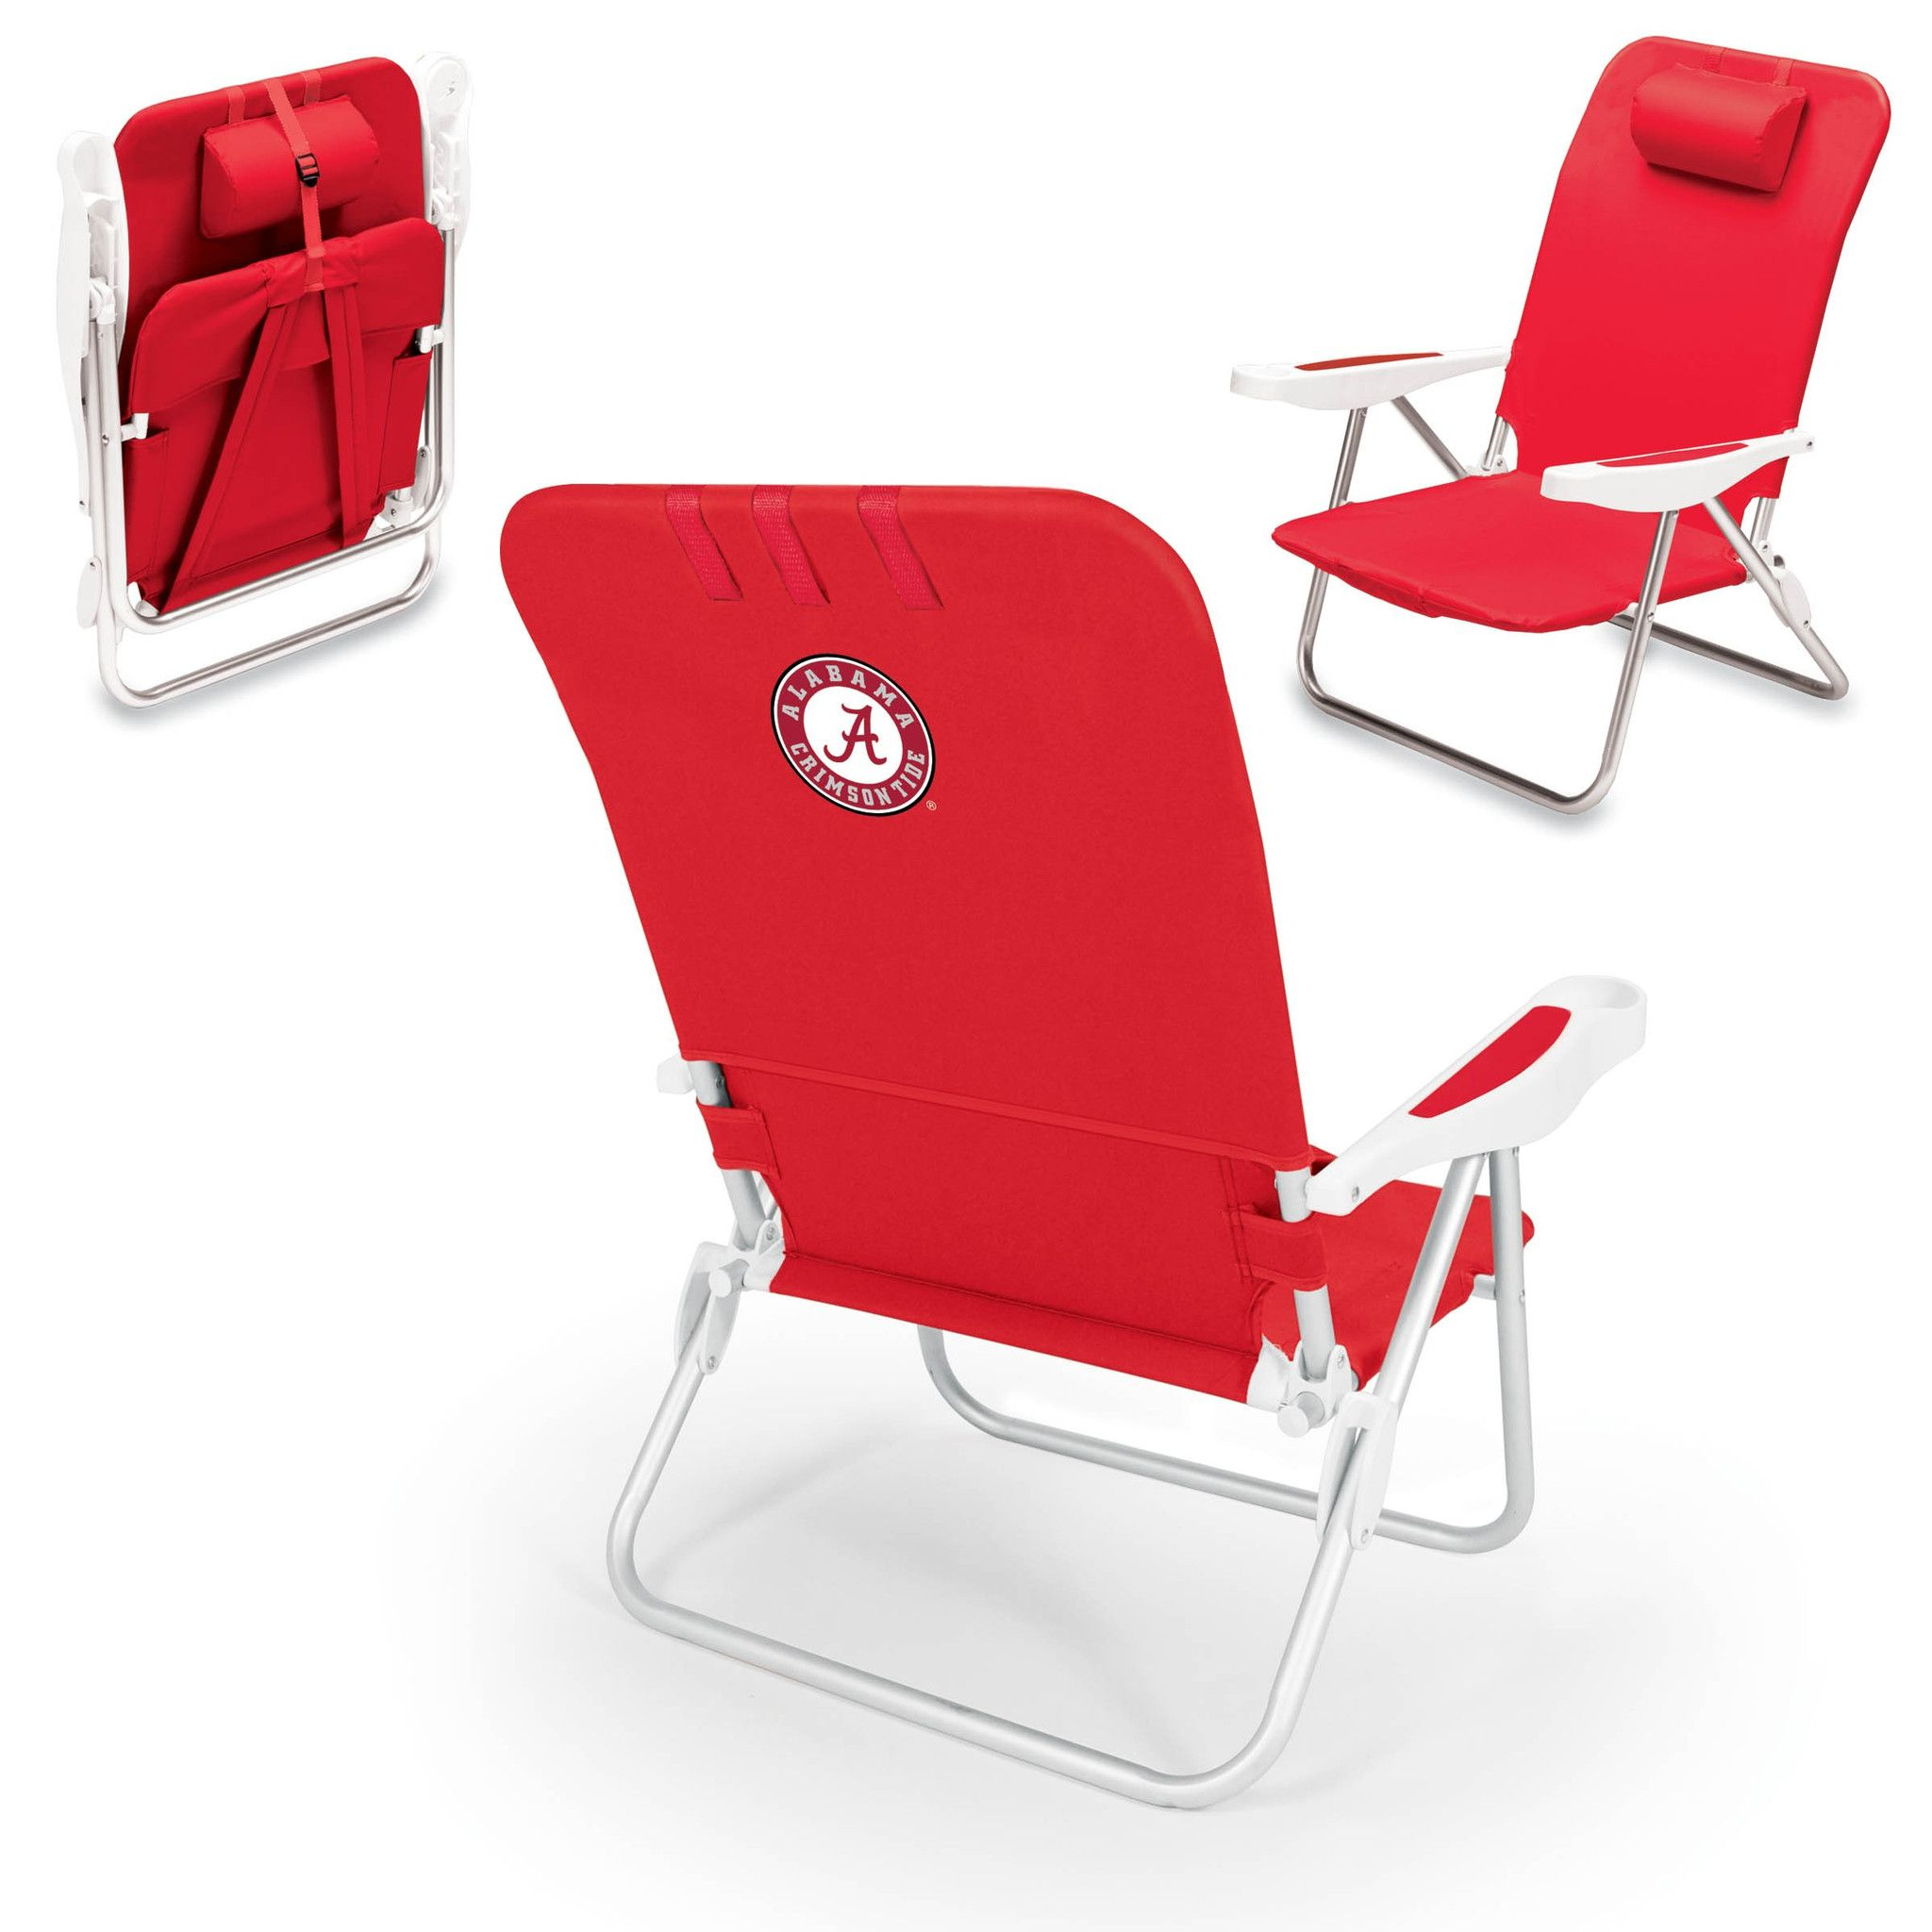 Beautiful Alabama Crimson Tide Beach Chair   Monaco By Picnic Time